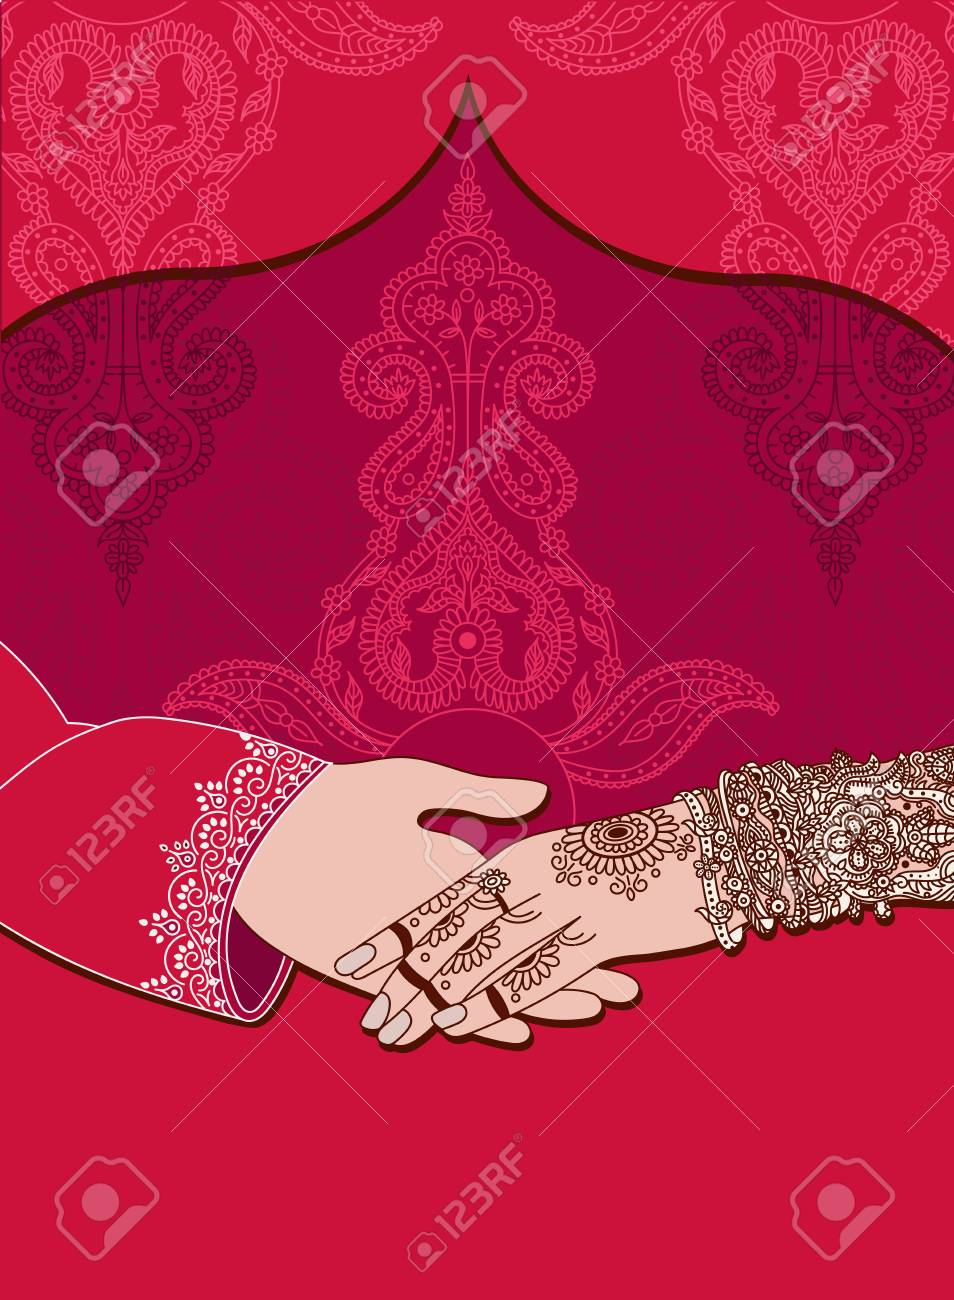 Wedding indian invitation card on red background india marriage vector wedding indian invitation card on red background india marriage templateautifully decorated indian bride handose up of groom holding brides stopboris